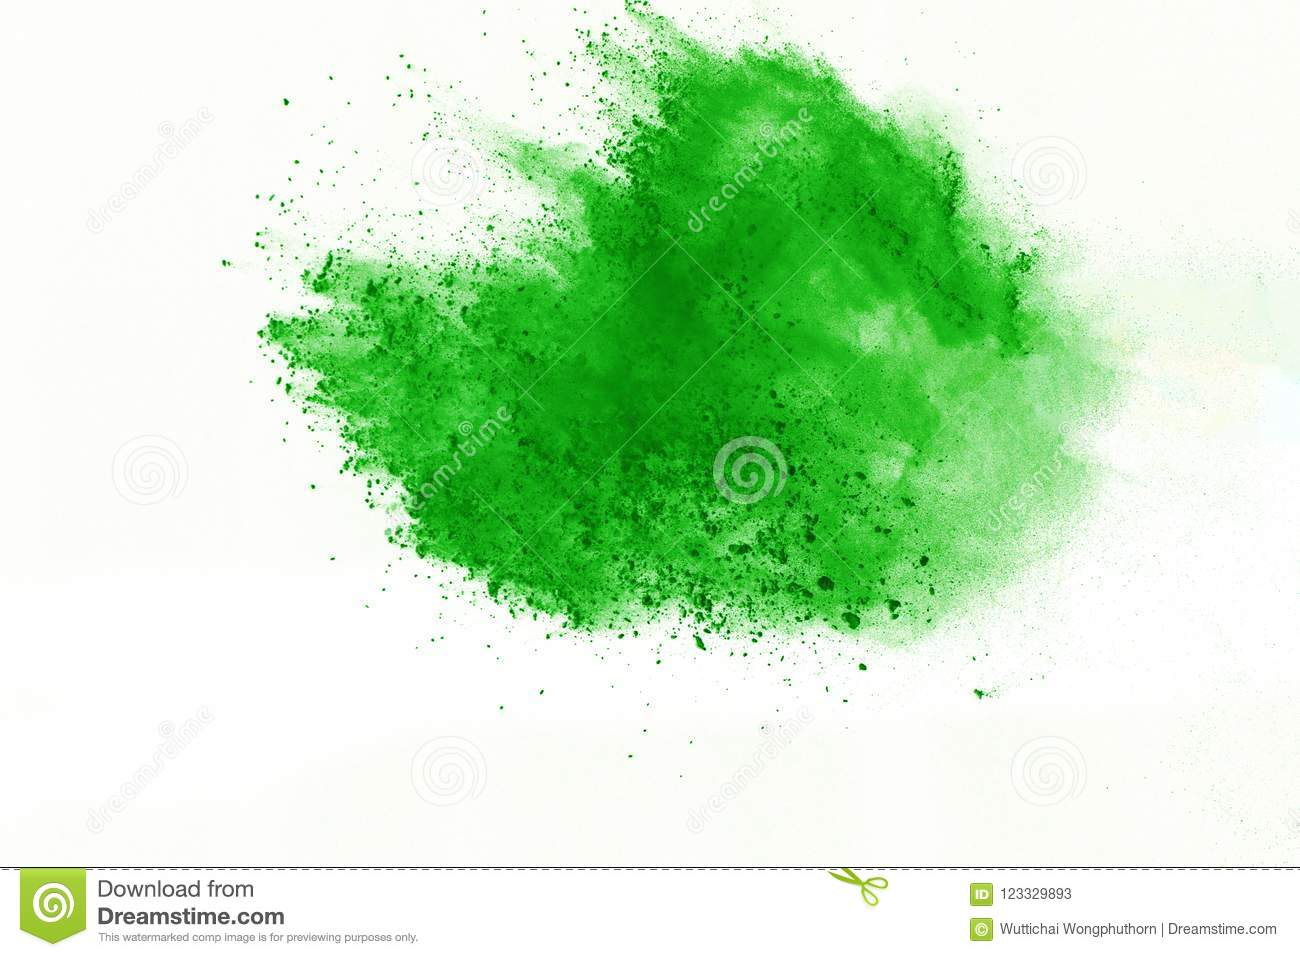 Colored powder explosion. Colore dust splatted.